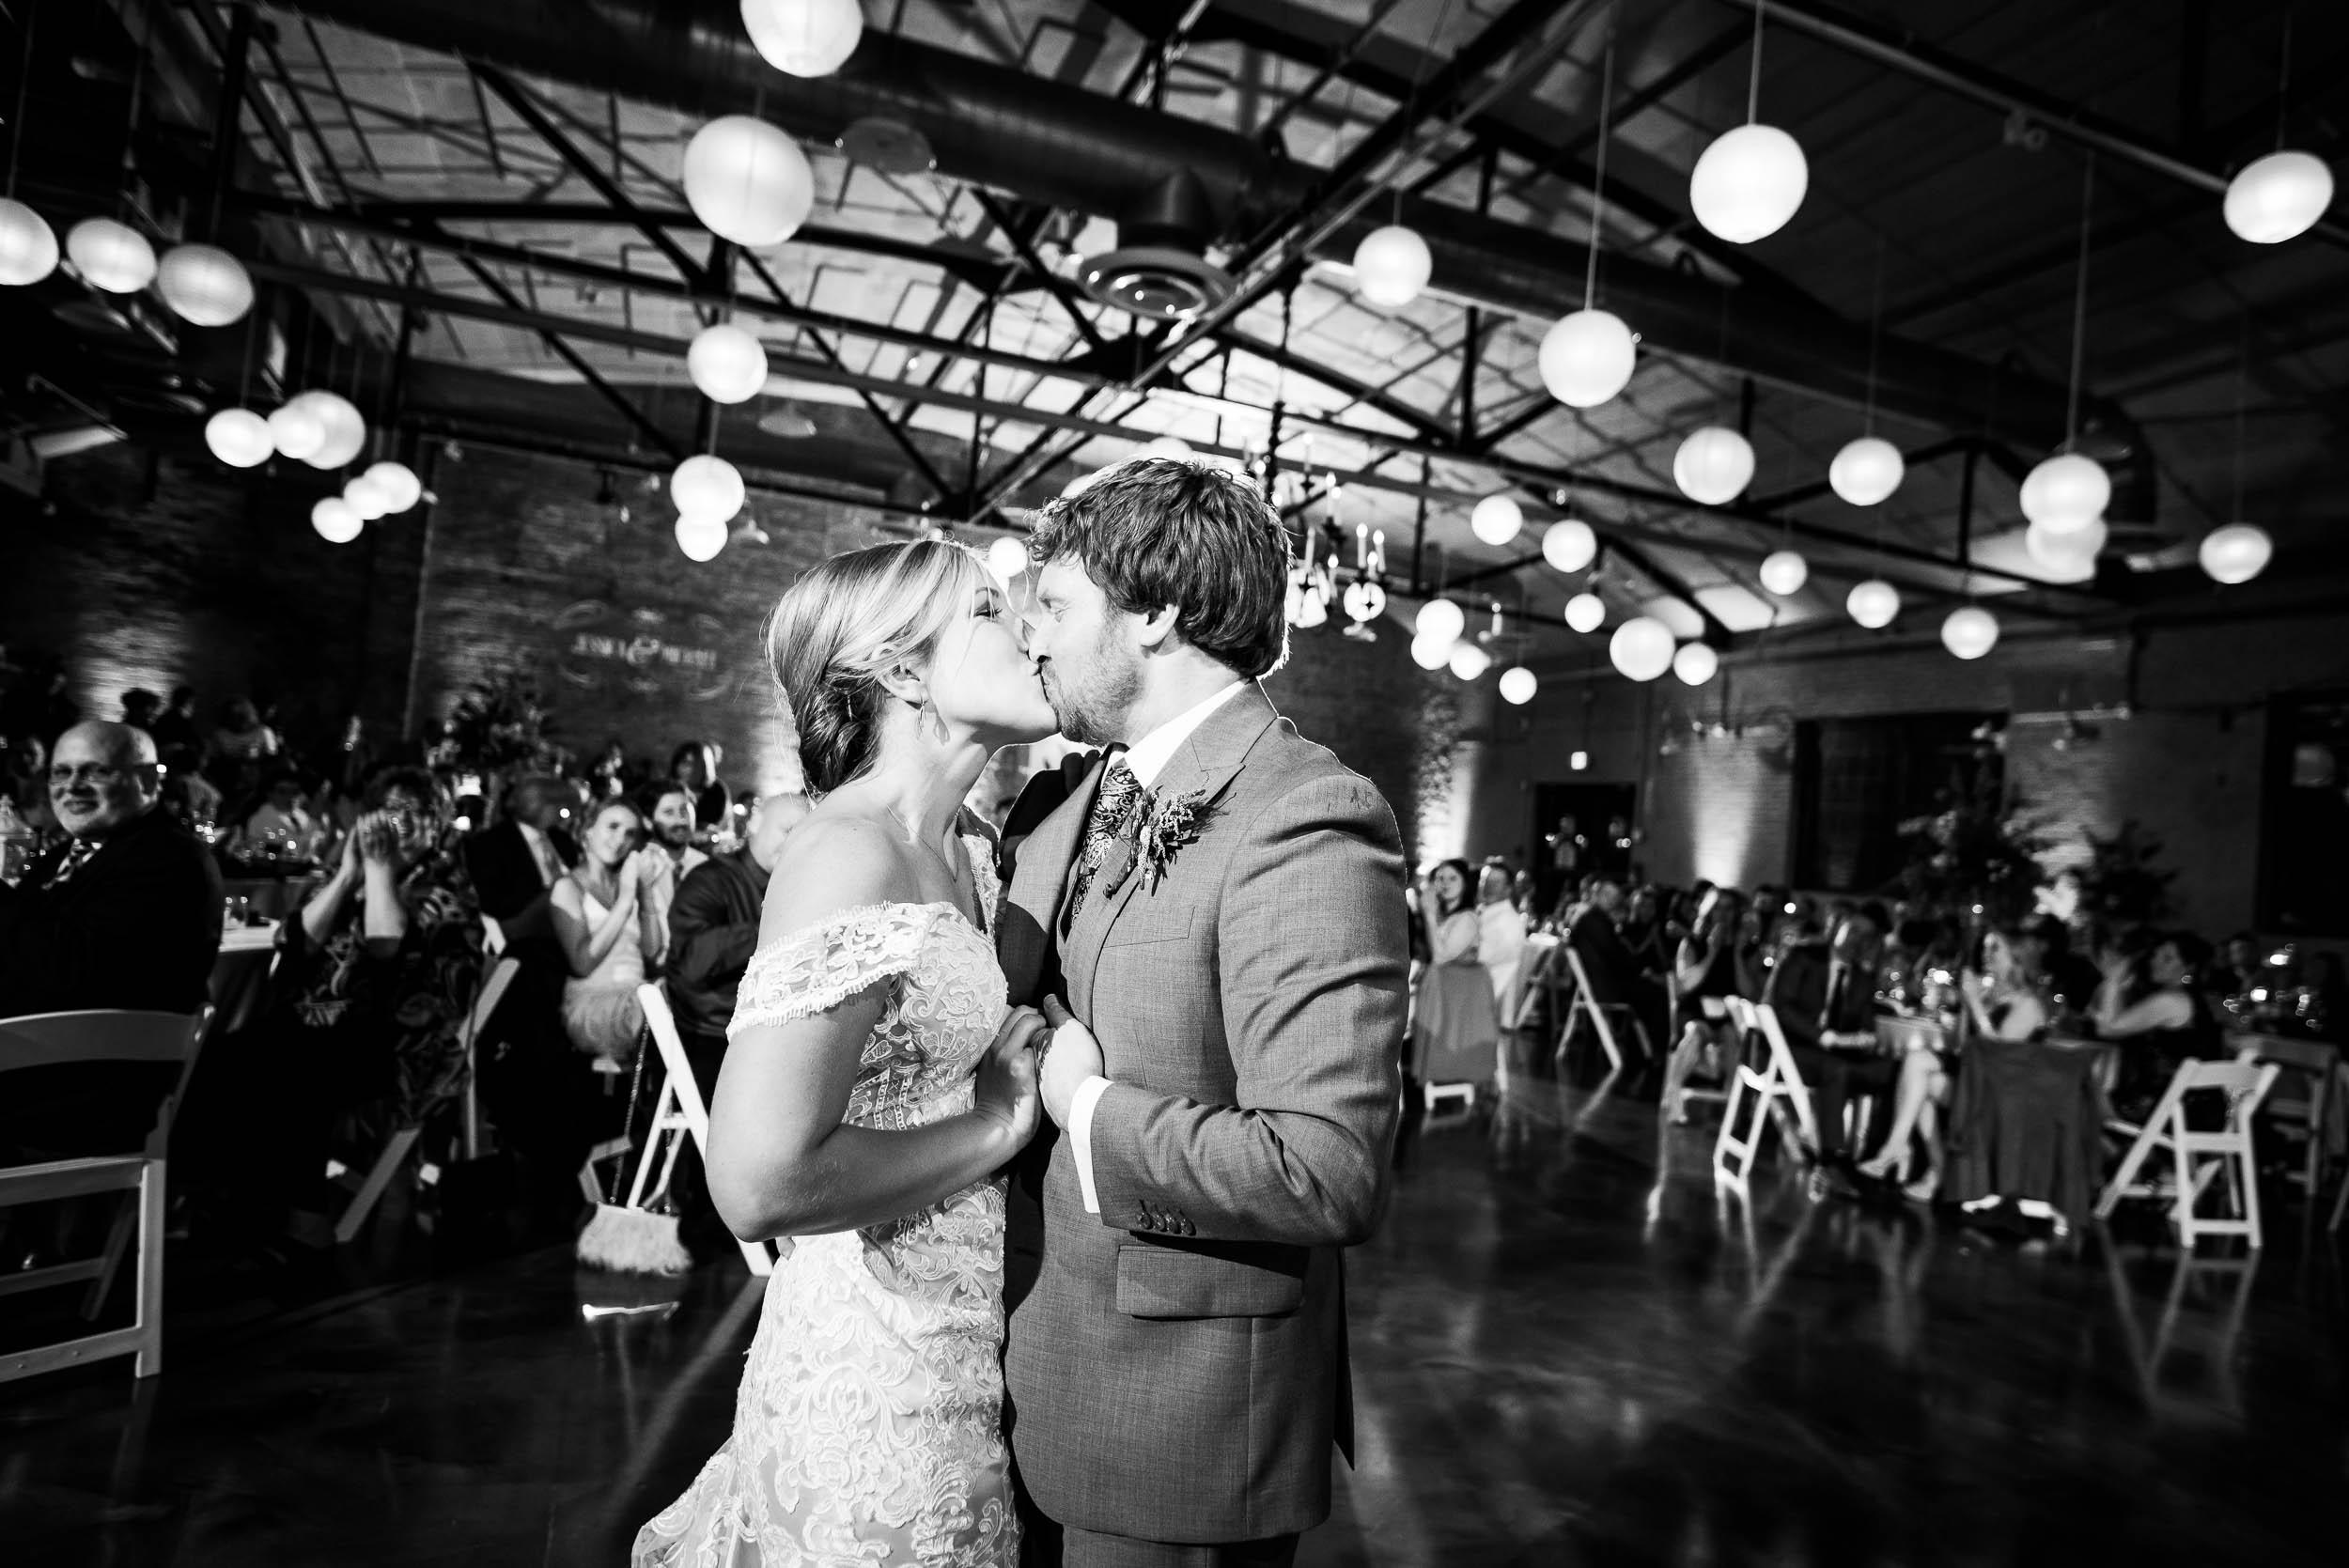 Modern industrial Chicago wedding inside Prairie Street Brewhouse captured by J. Brown Photography. Find more wedding ideas at jbrownphotography.com!